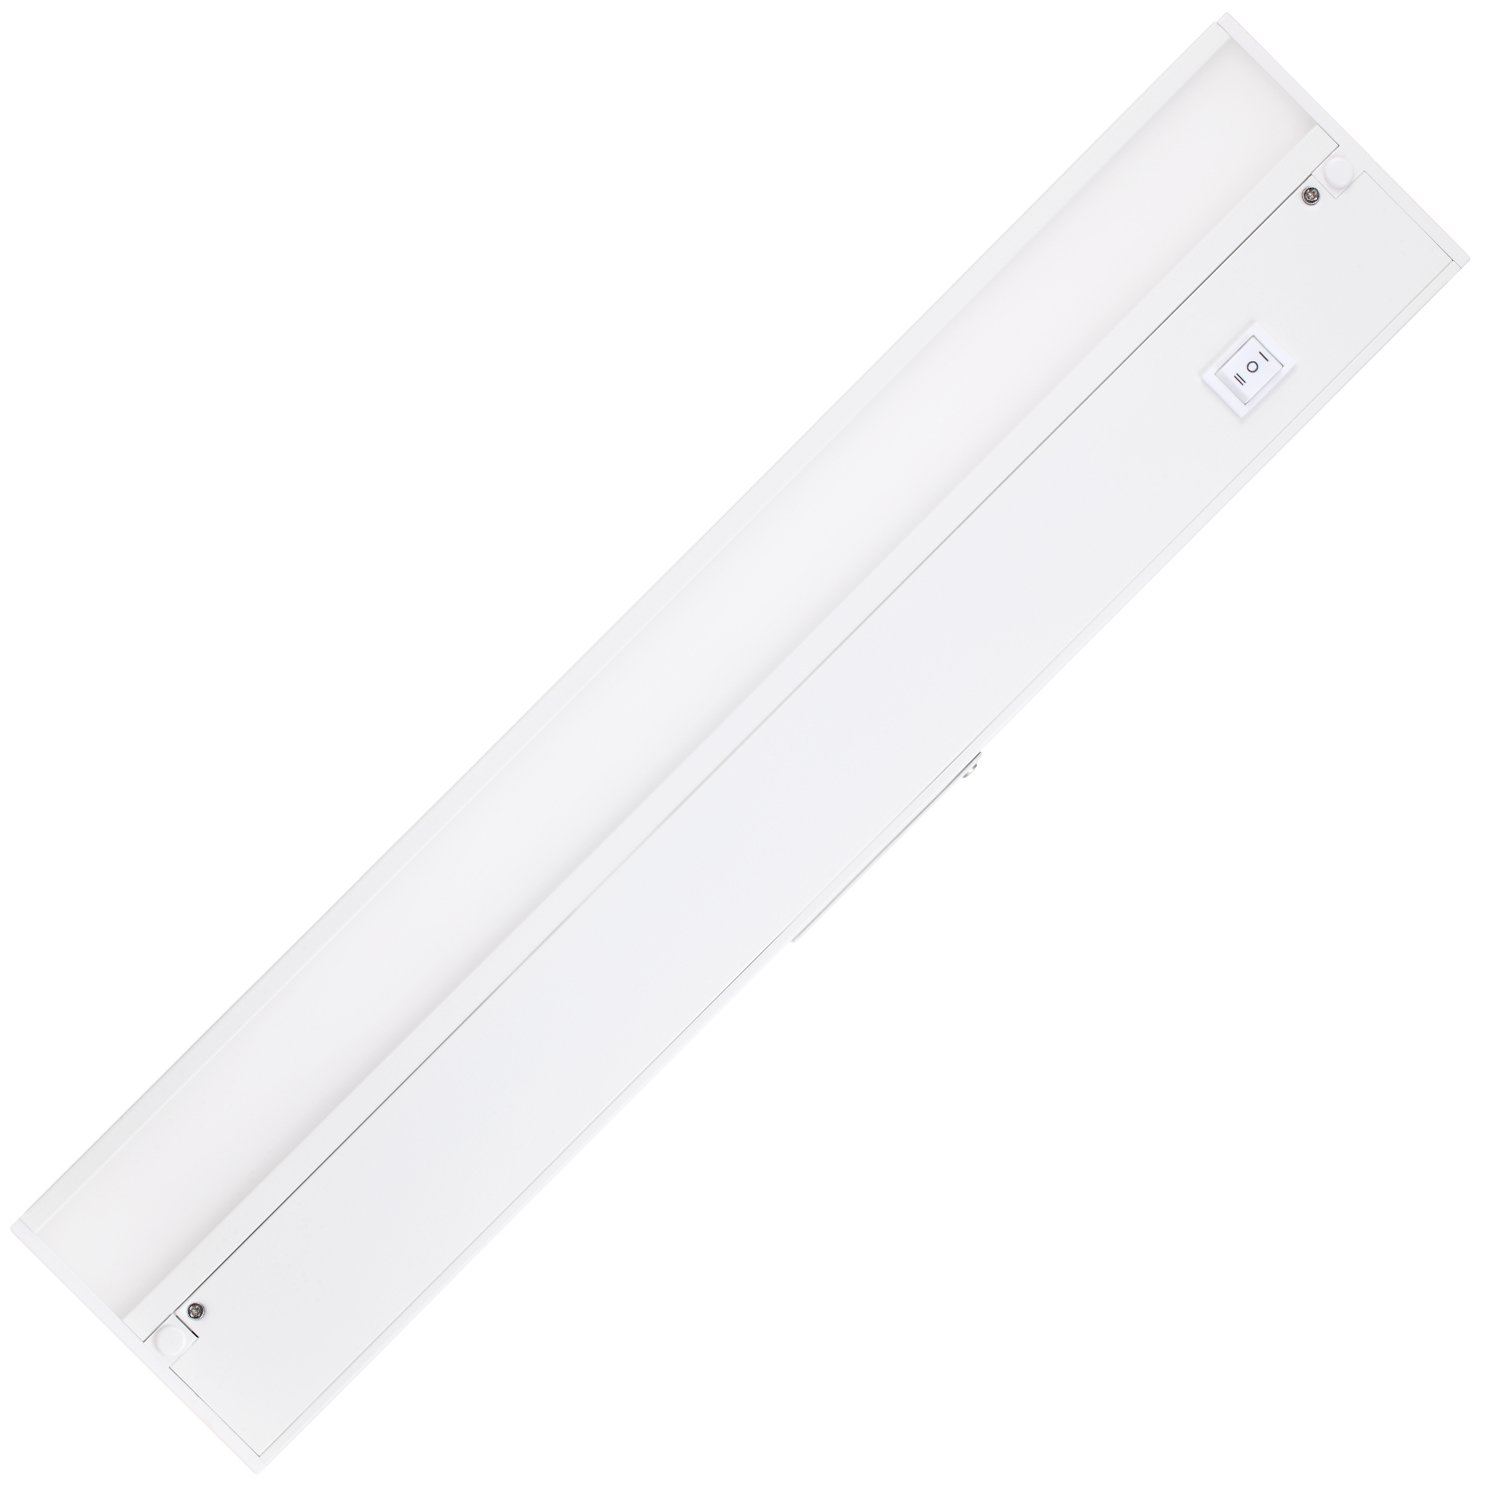 GetInLight Dimmable Hardwired or Plugged-In Under Cabinet LED Lighting with ETL Listed, Edge lit Technology, Soft White(3000k), Matte White Finished, 18 Inch, IN-0201-2-WH